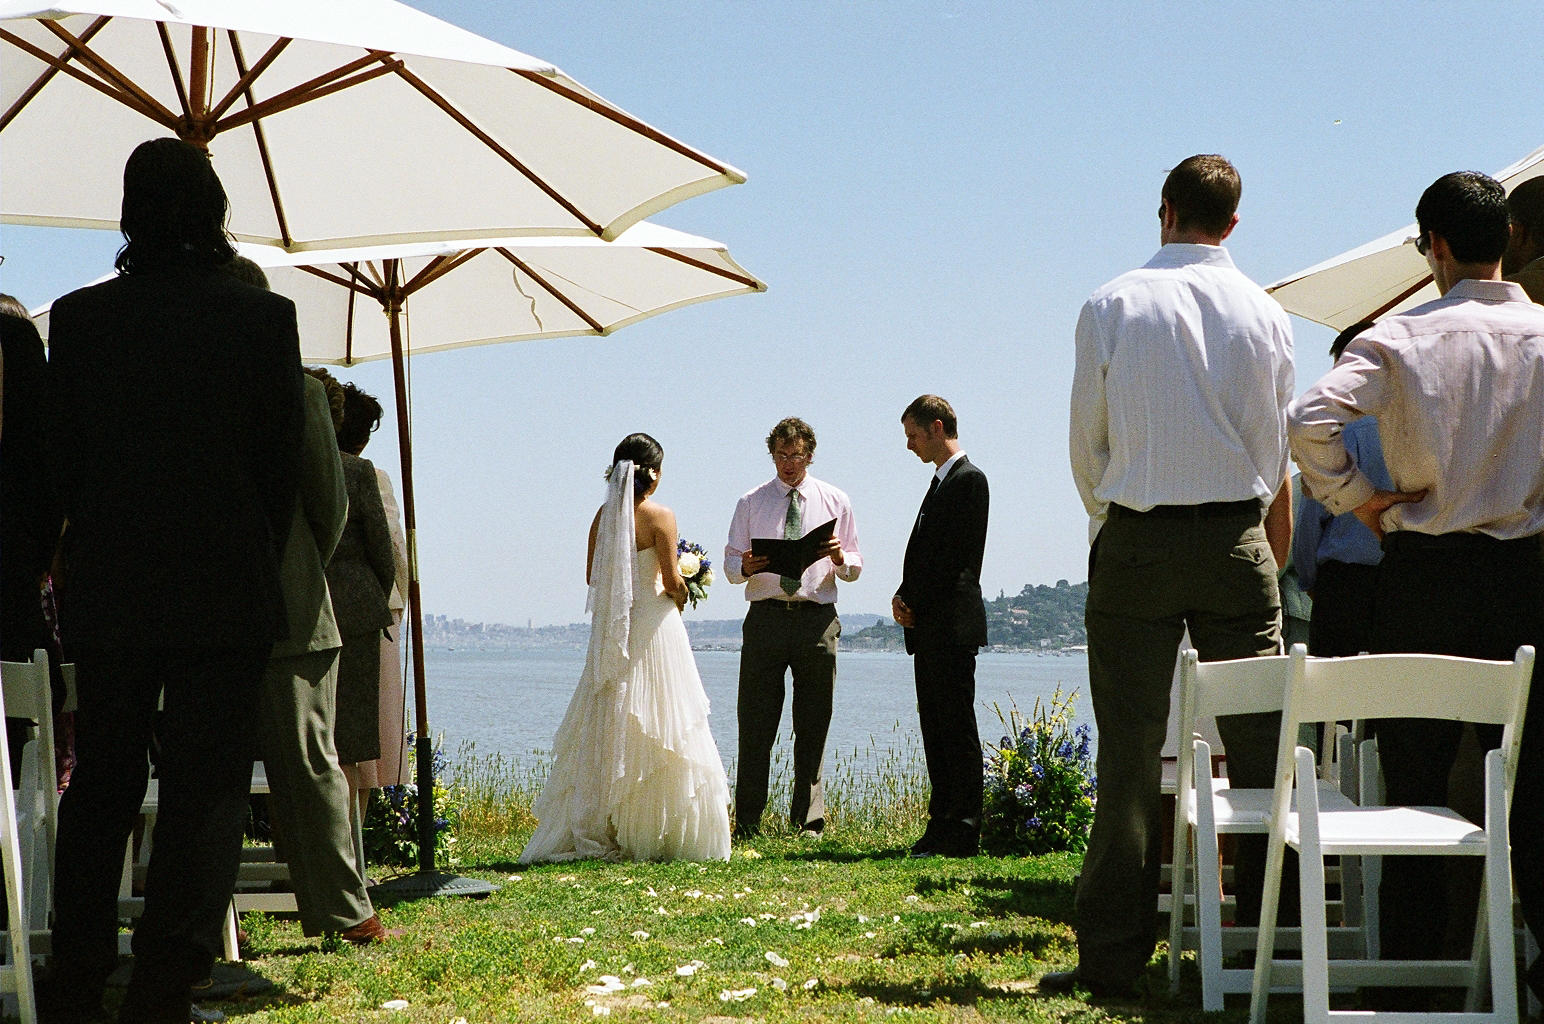 Vows with a view of the San Francisco skyline